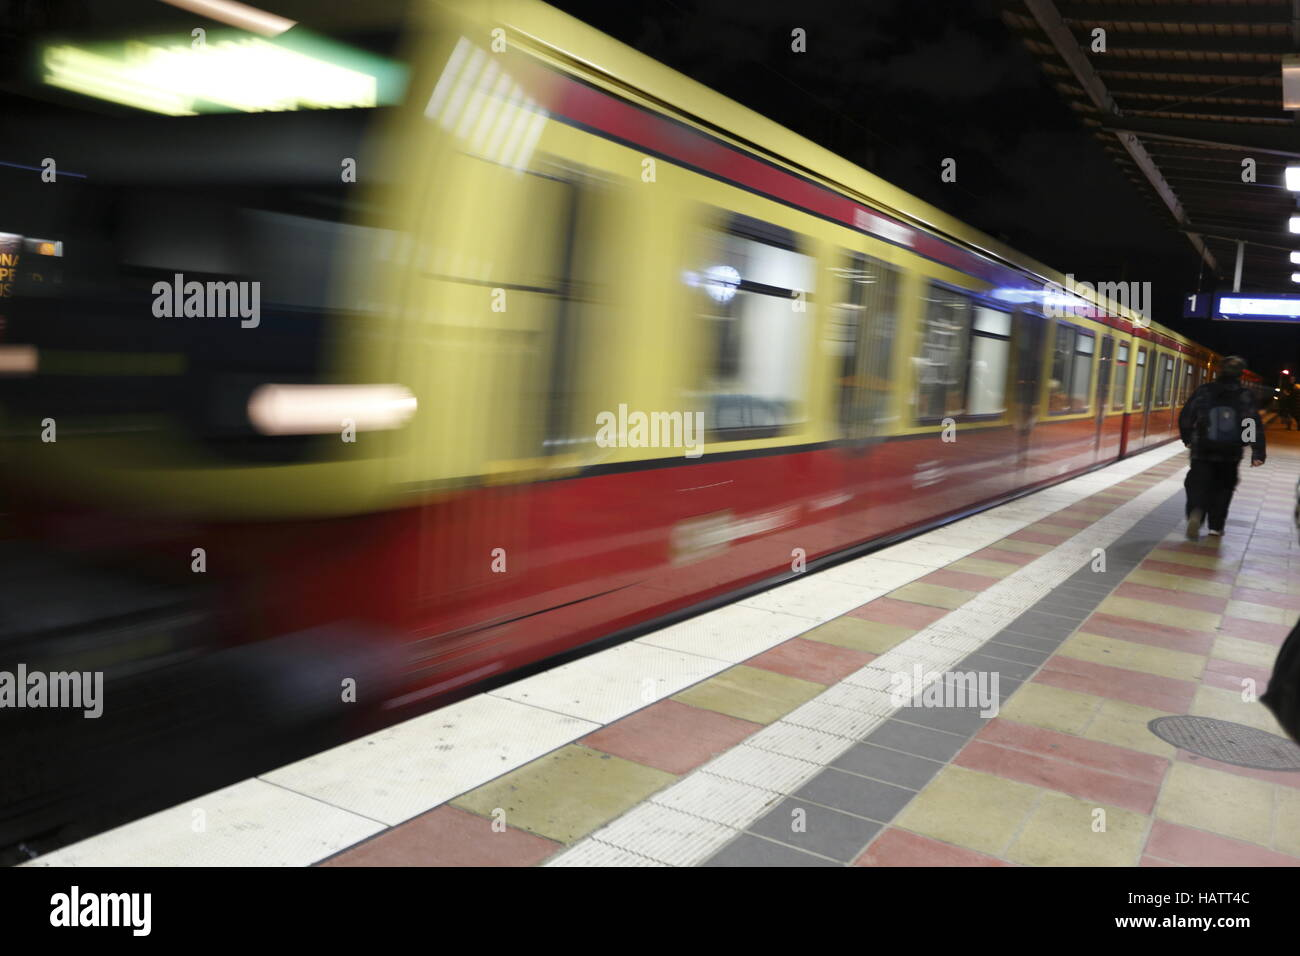 personal station s - bahn - Stock Image